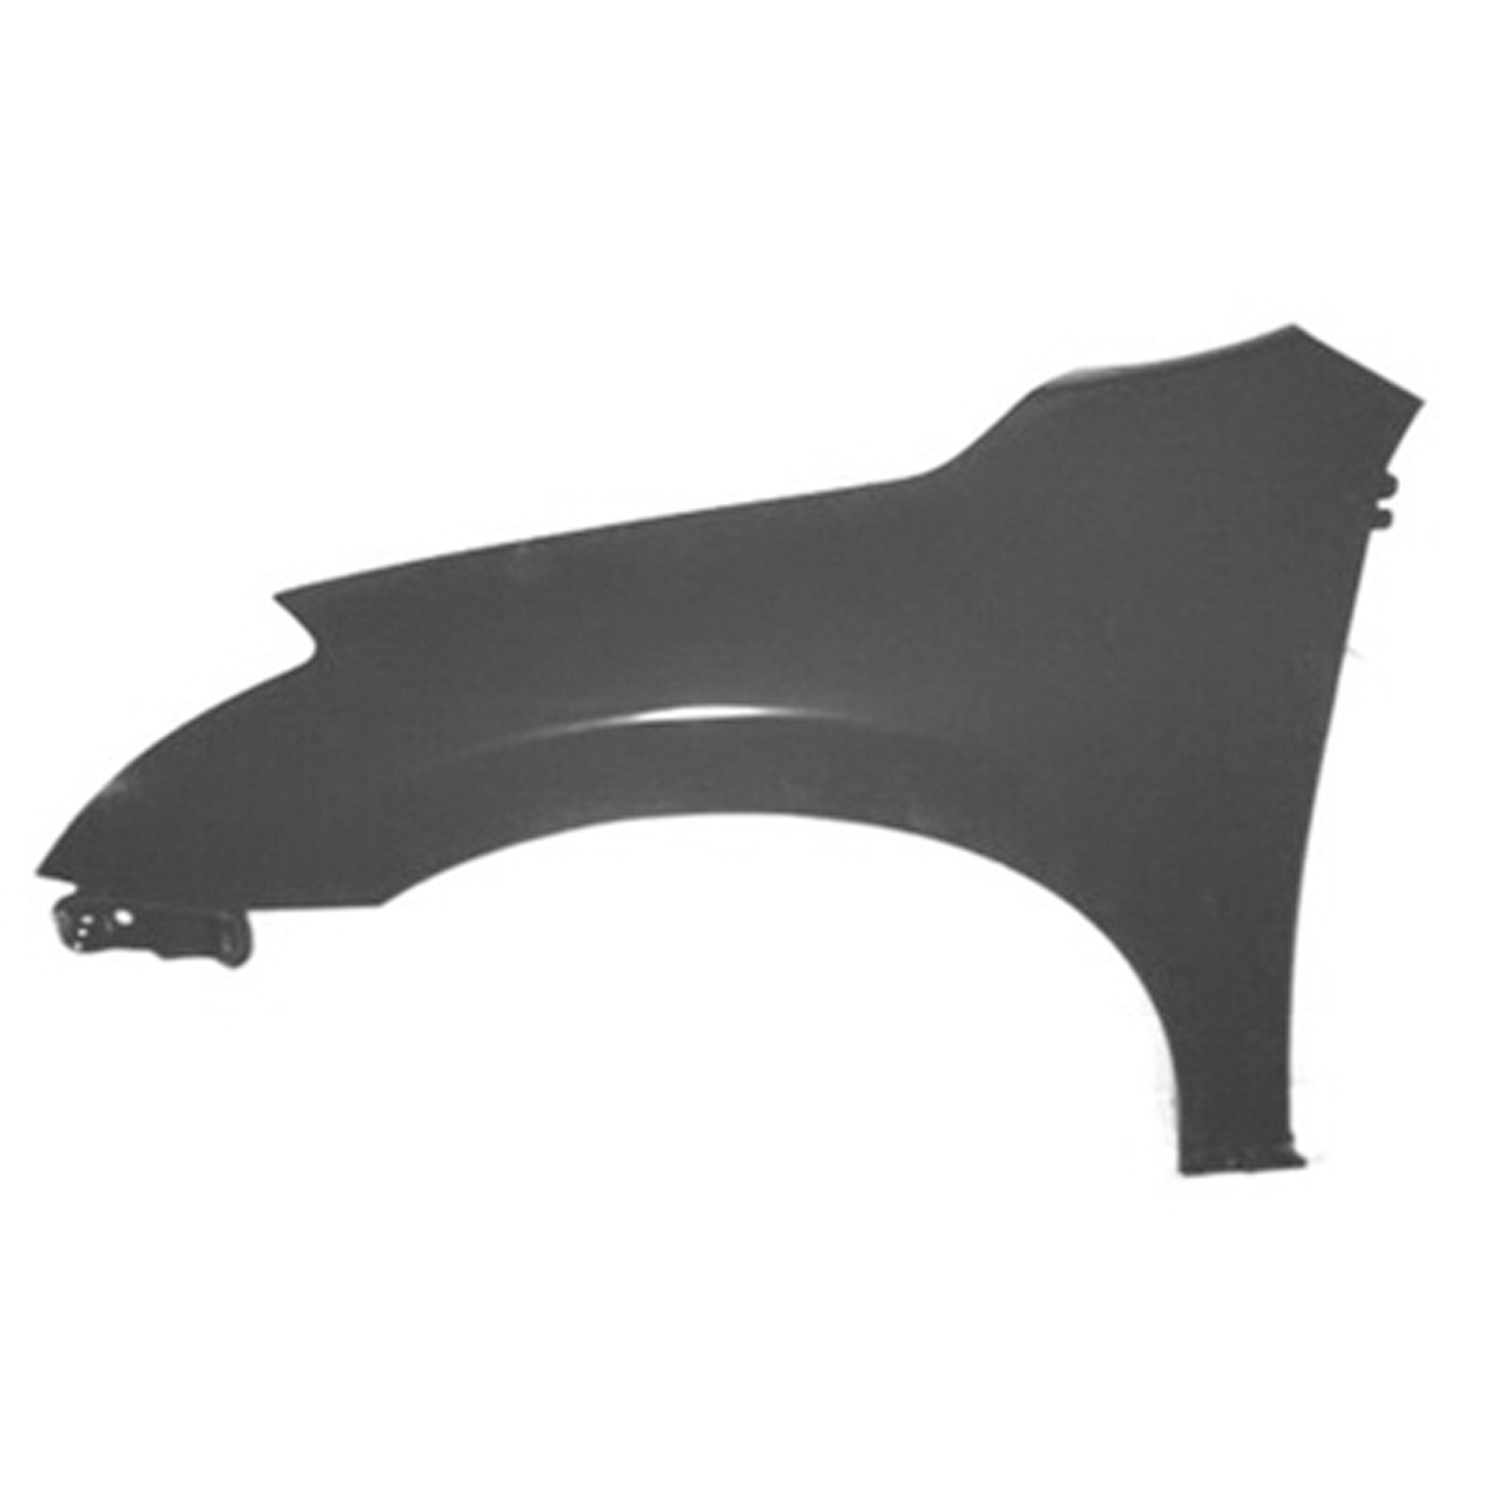 Front Driver Side NI1244100 Replacement Fender Brace for 07-12 Altima